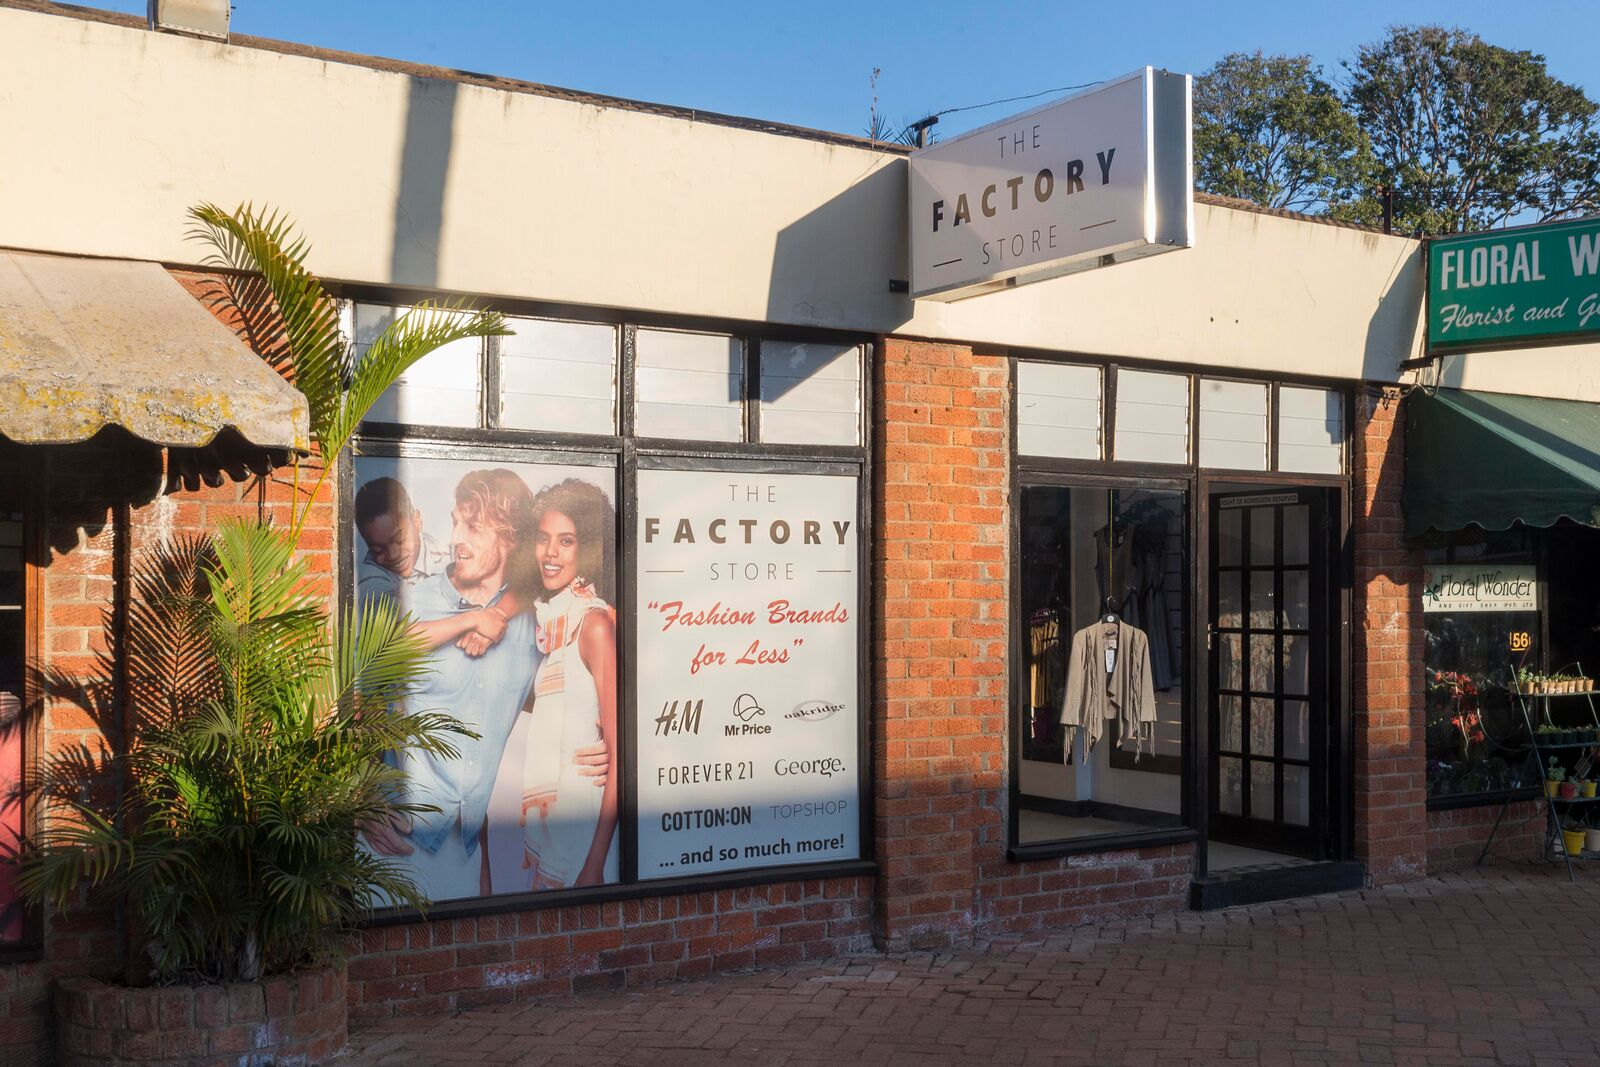 The Factory Store